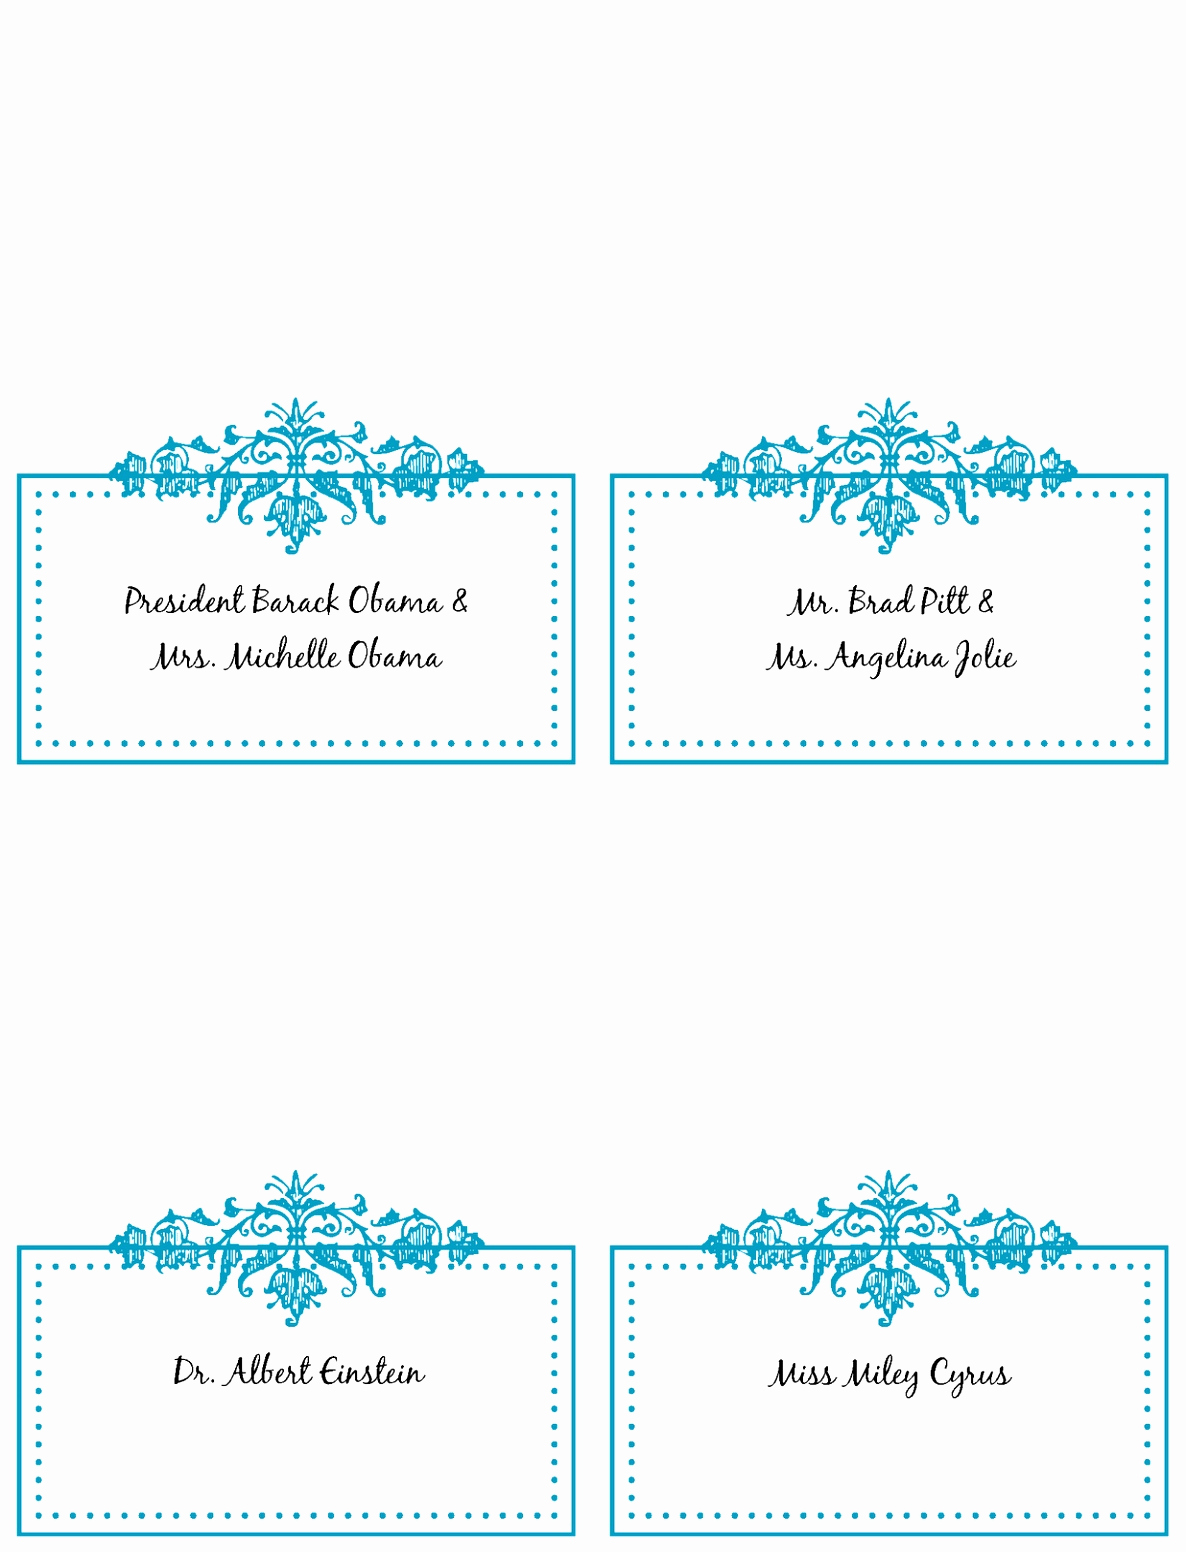 Placement Card Template Word Lovely 9 Place Card Template Word 6 Per Sheet Puiwy